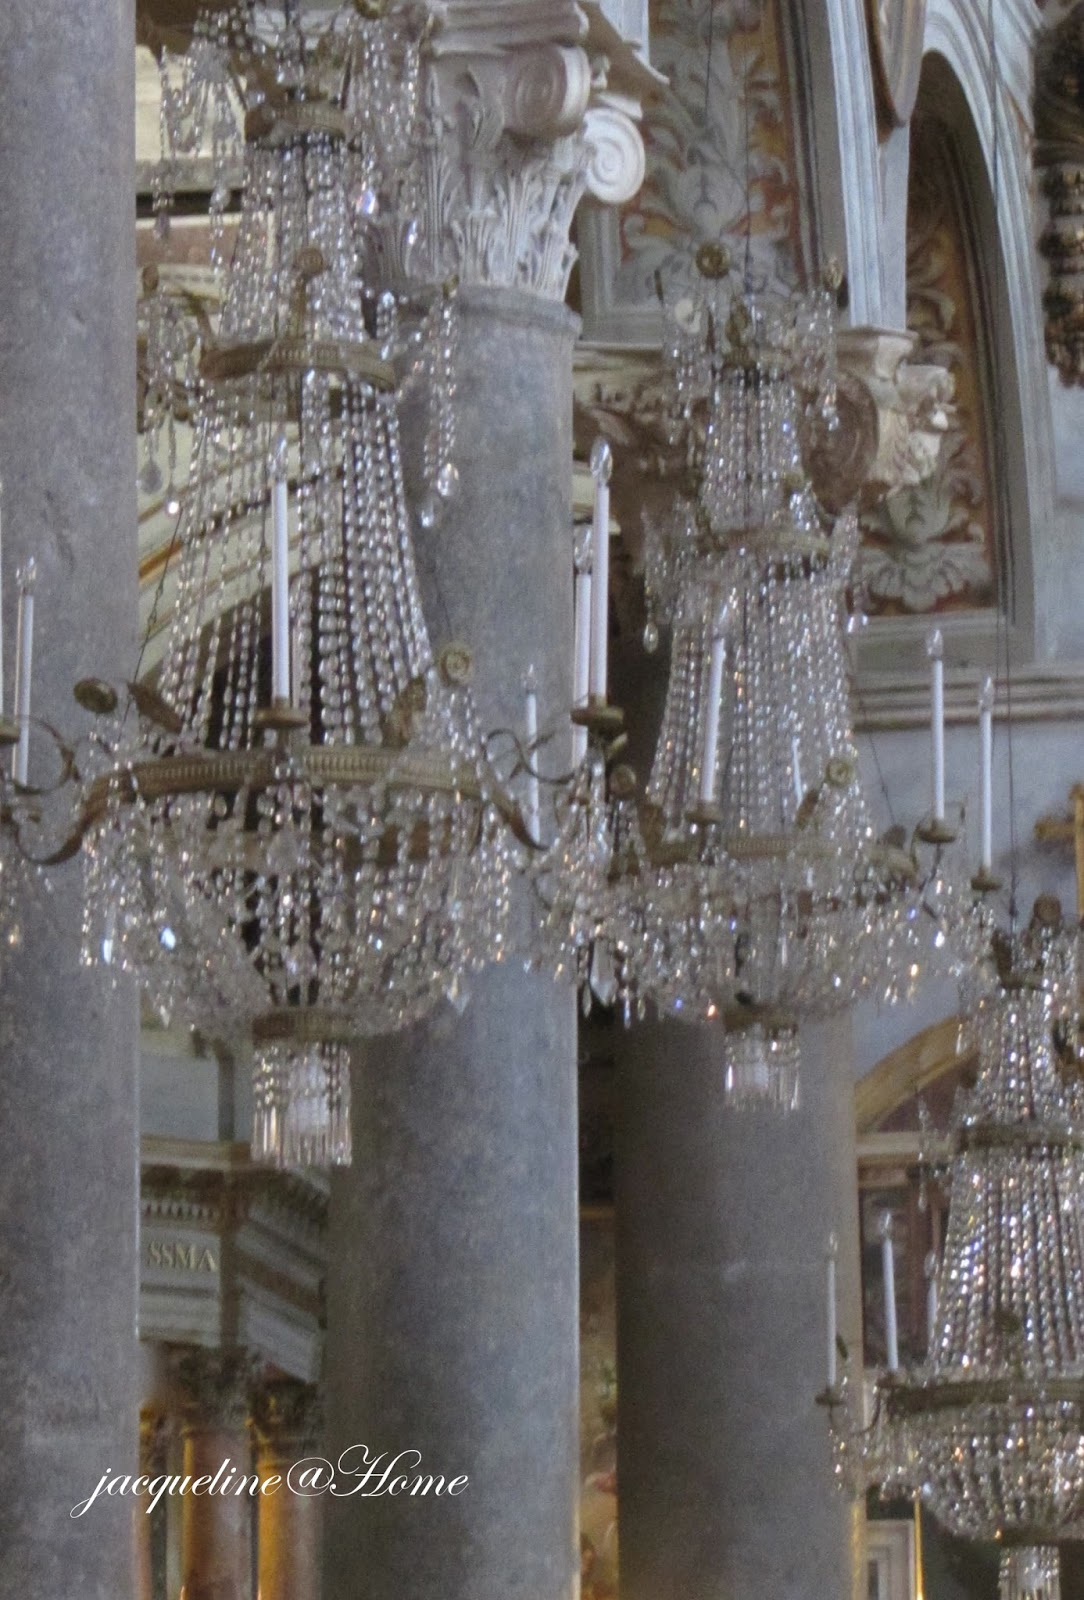 Home im gonna swing from the chandelier church of santa maria in aracoeli rome sparkling chandeliers as far as the eye can see a beautiful sight they hang from every arch arubaitofo Image collections